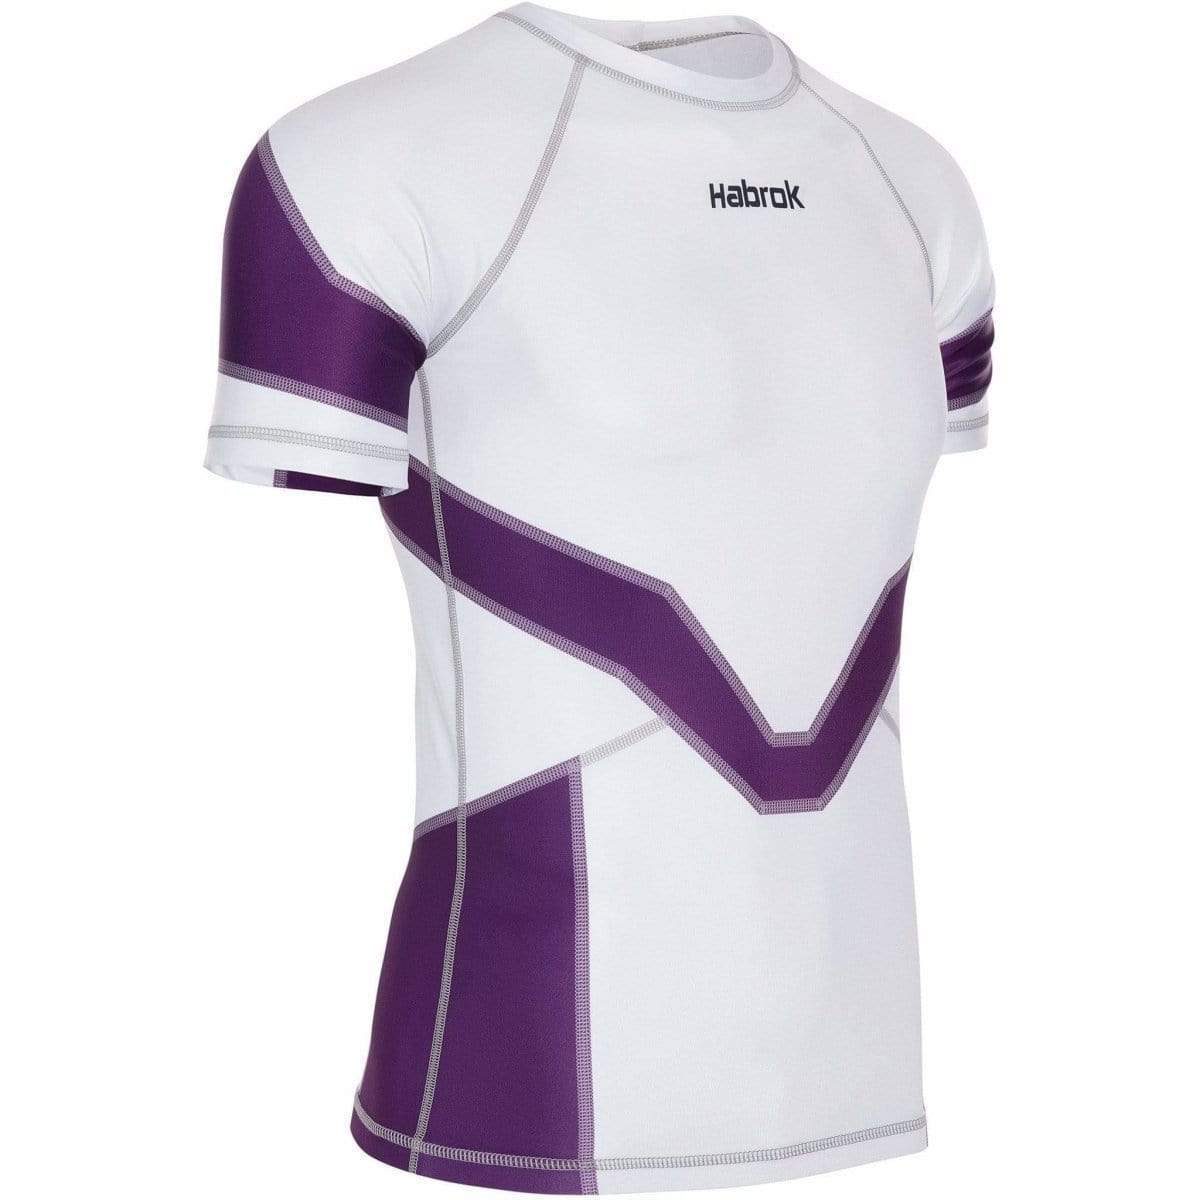 Habrok Rash Guard S / PURPLE Transform 2.0 | Ranked Rash Guard Men | Half Sleeve | Men